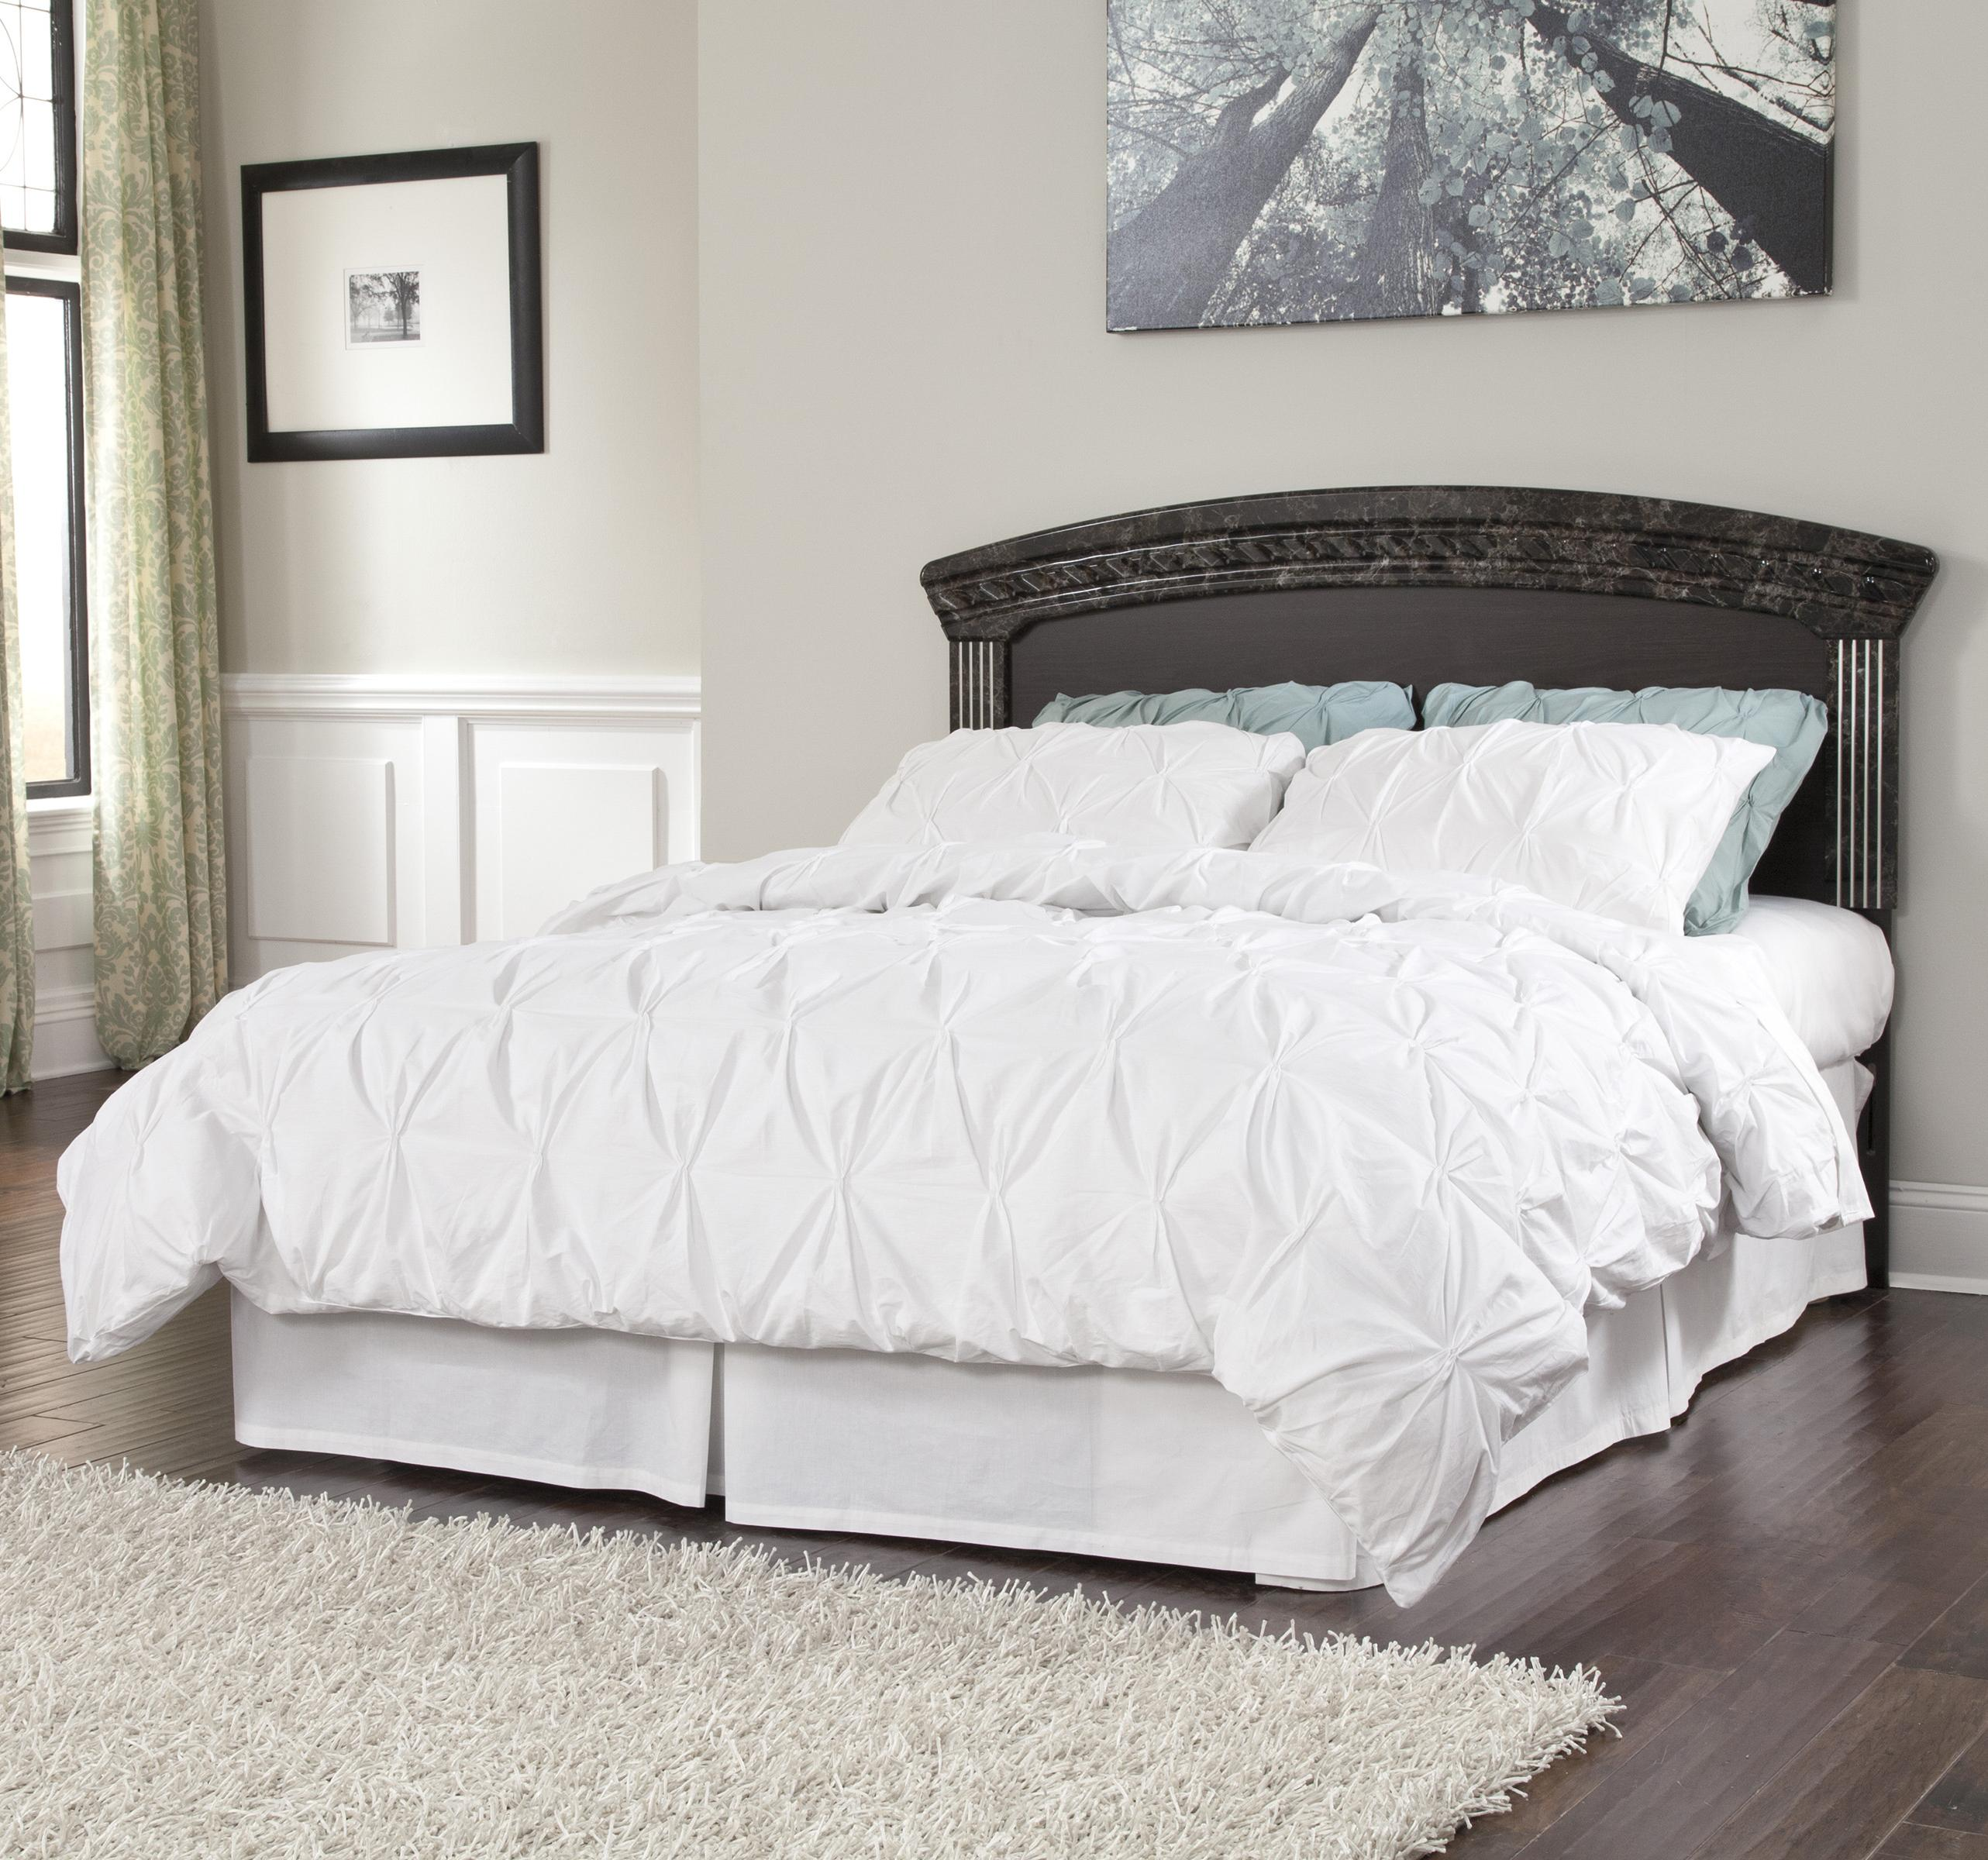 Signature design by ashley vachel traditional queen full for Royal headboard